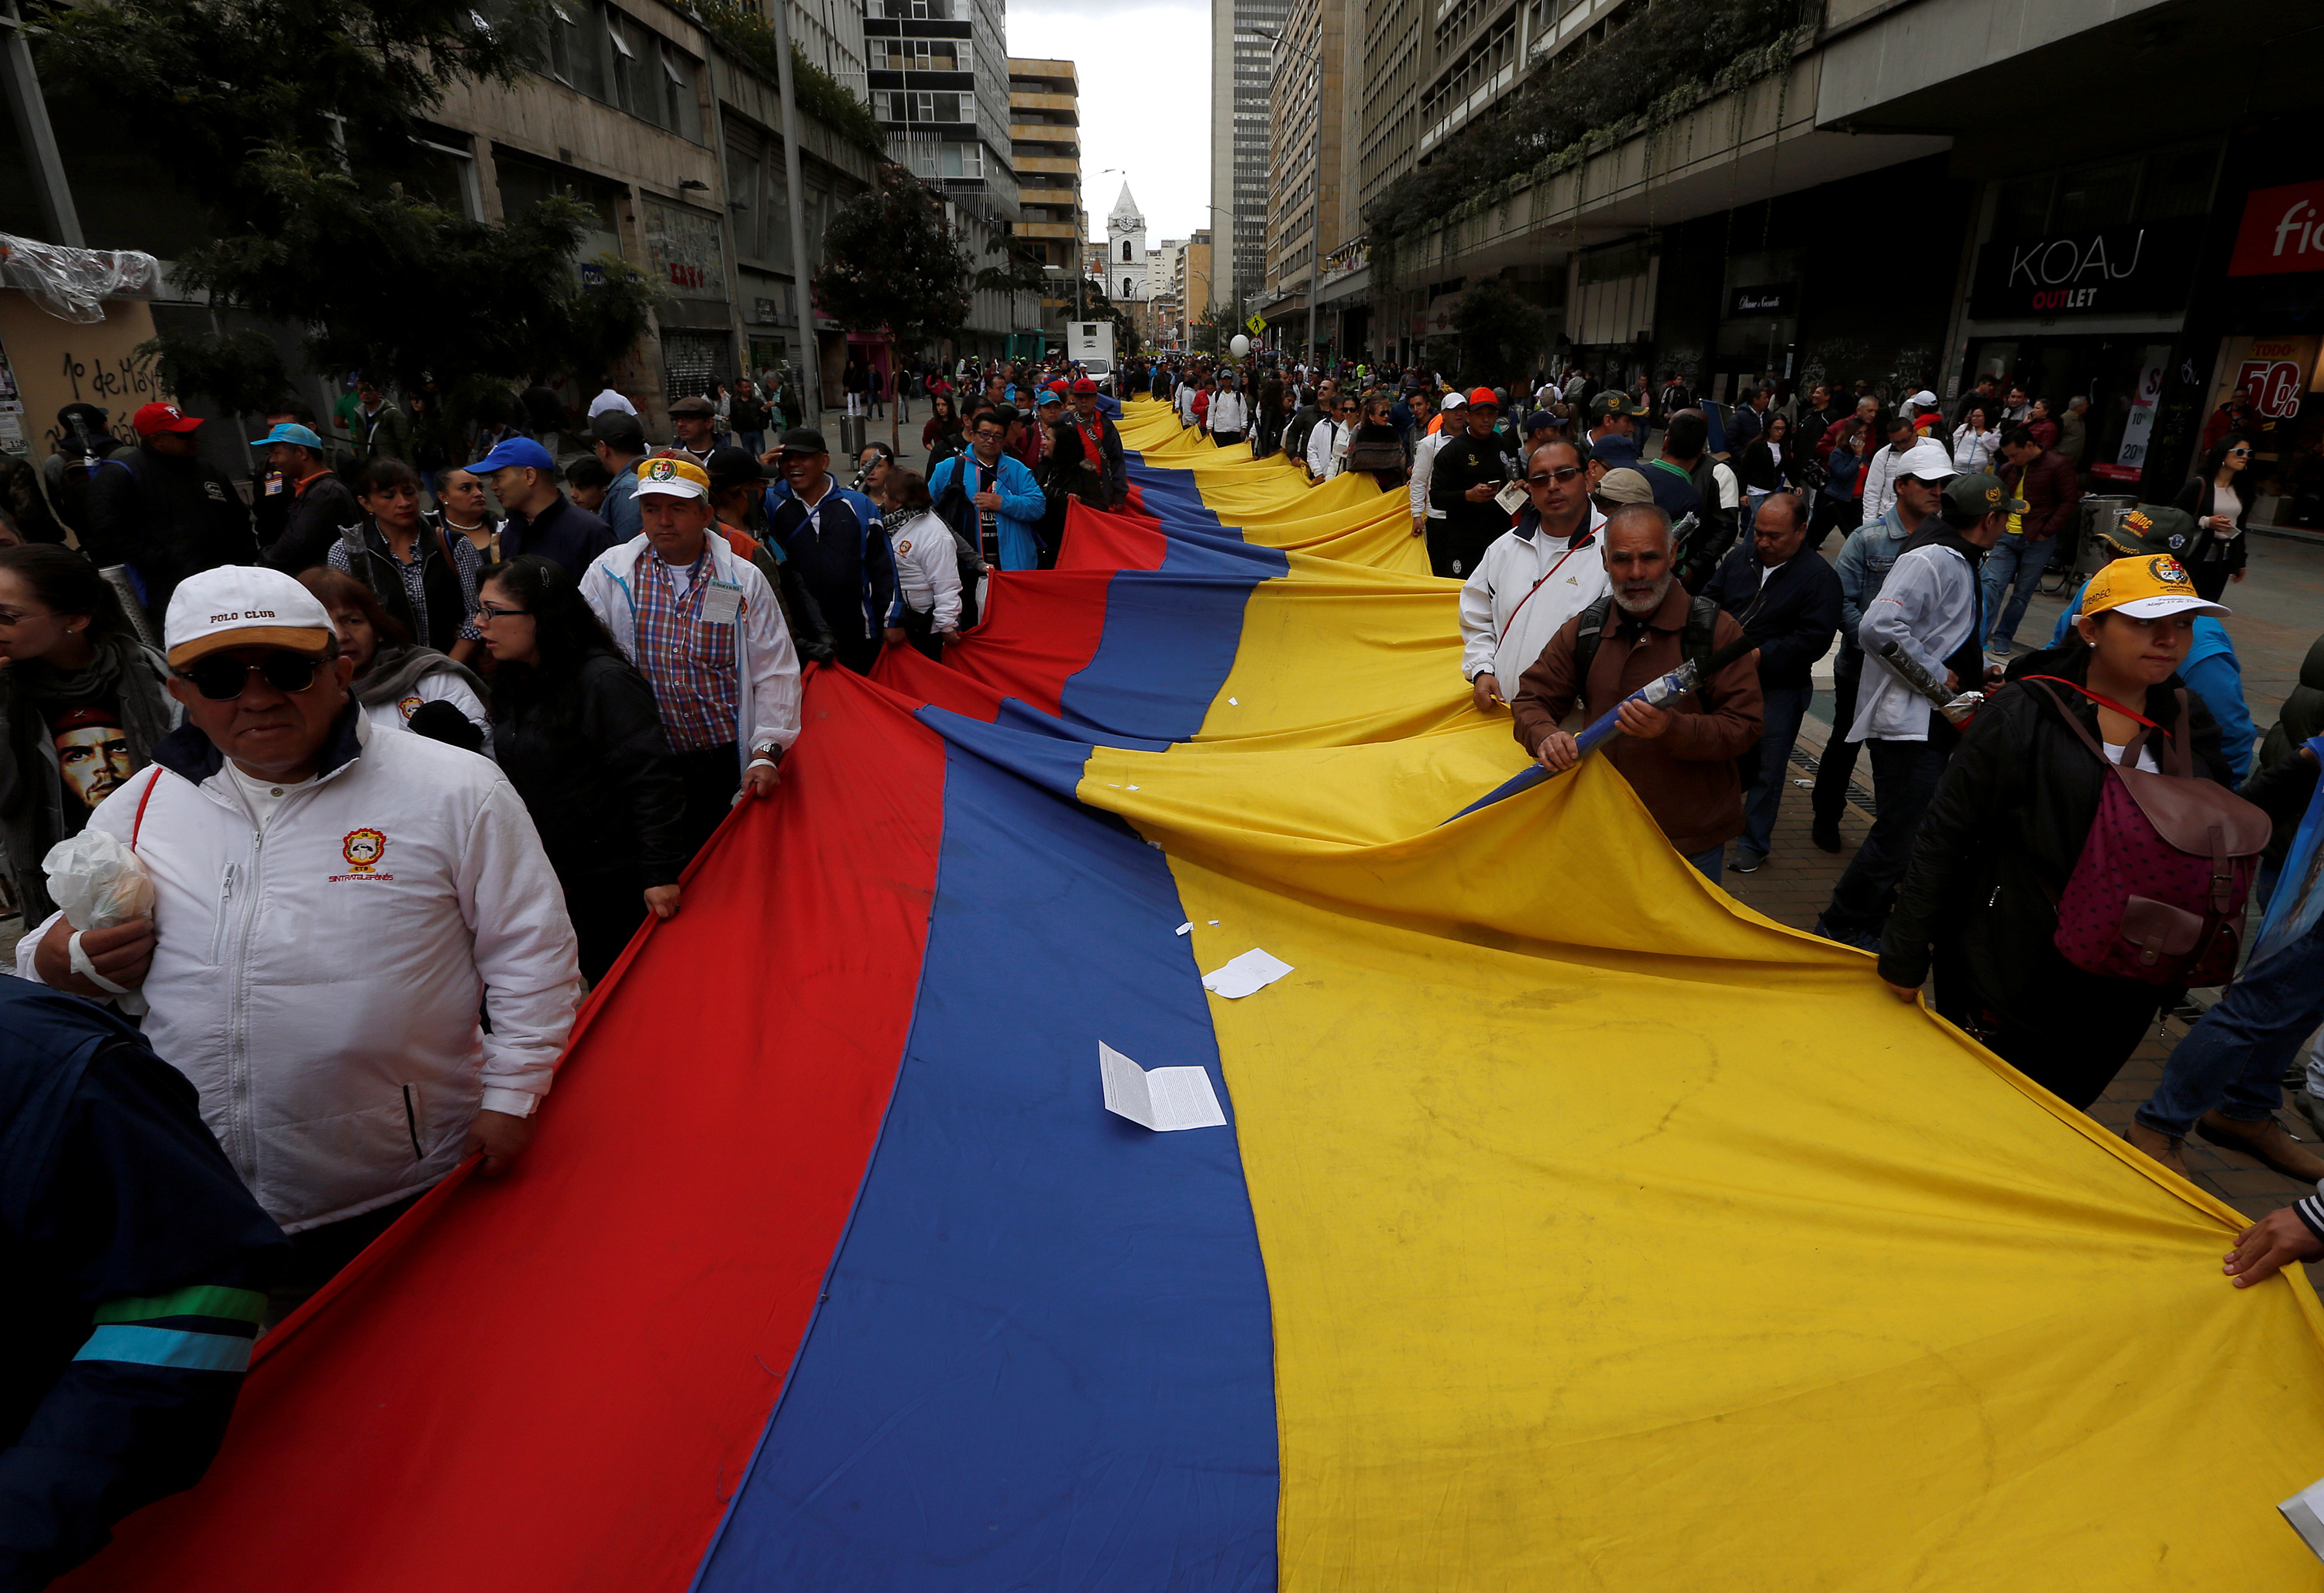 Demonstrators hold a flag during a rally commemorating May Day in Bogota, Colombia May 1, 2018. REUTERS/Jaime Saldarriaga - RC163BBBBF30